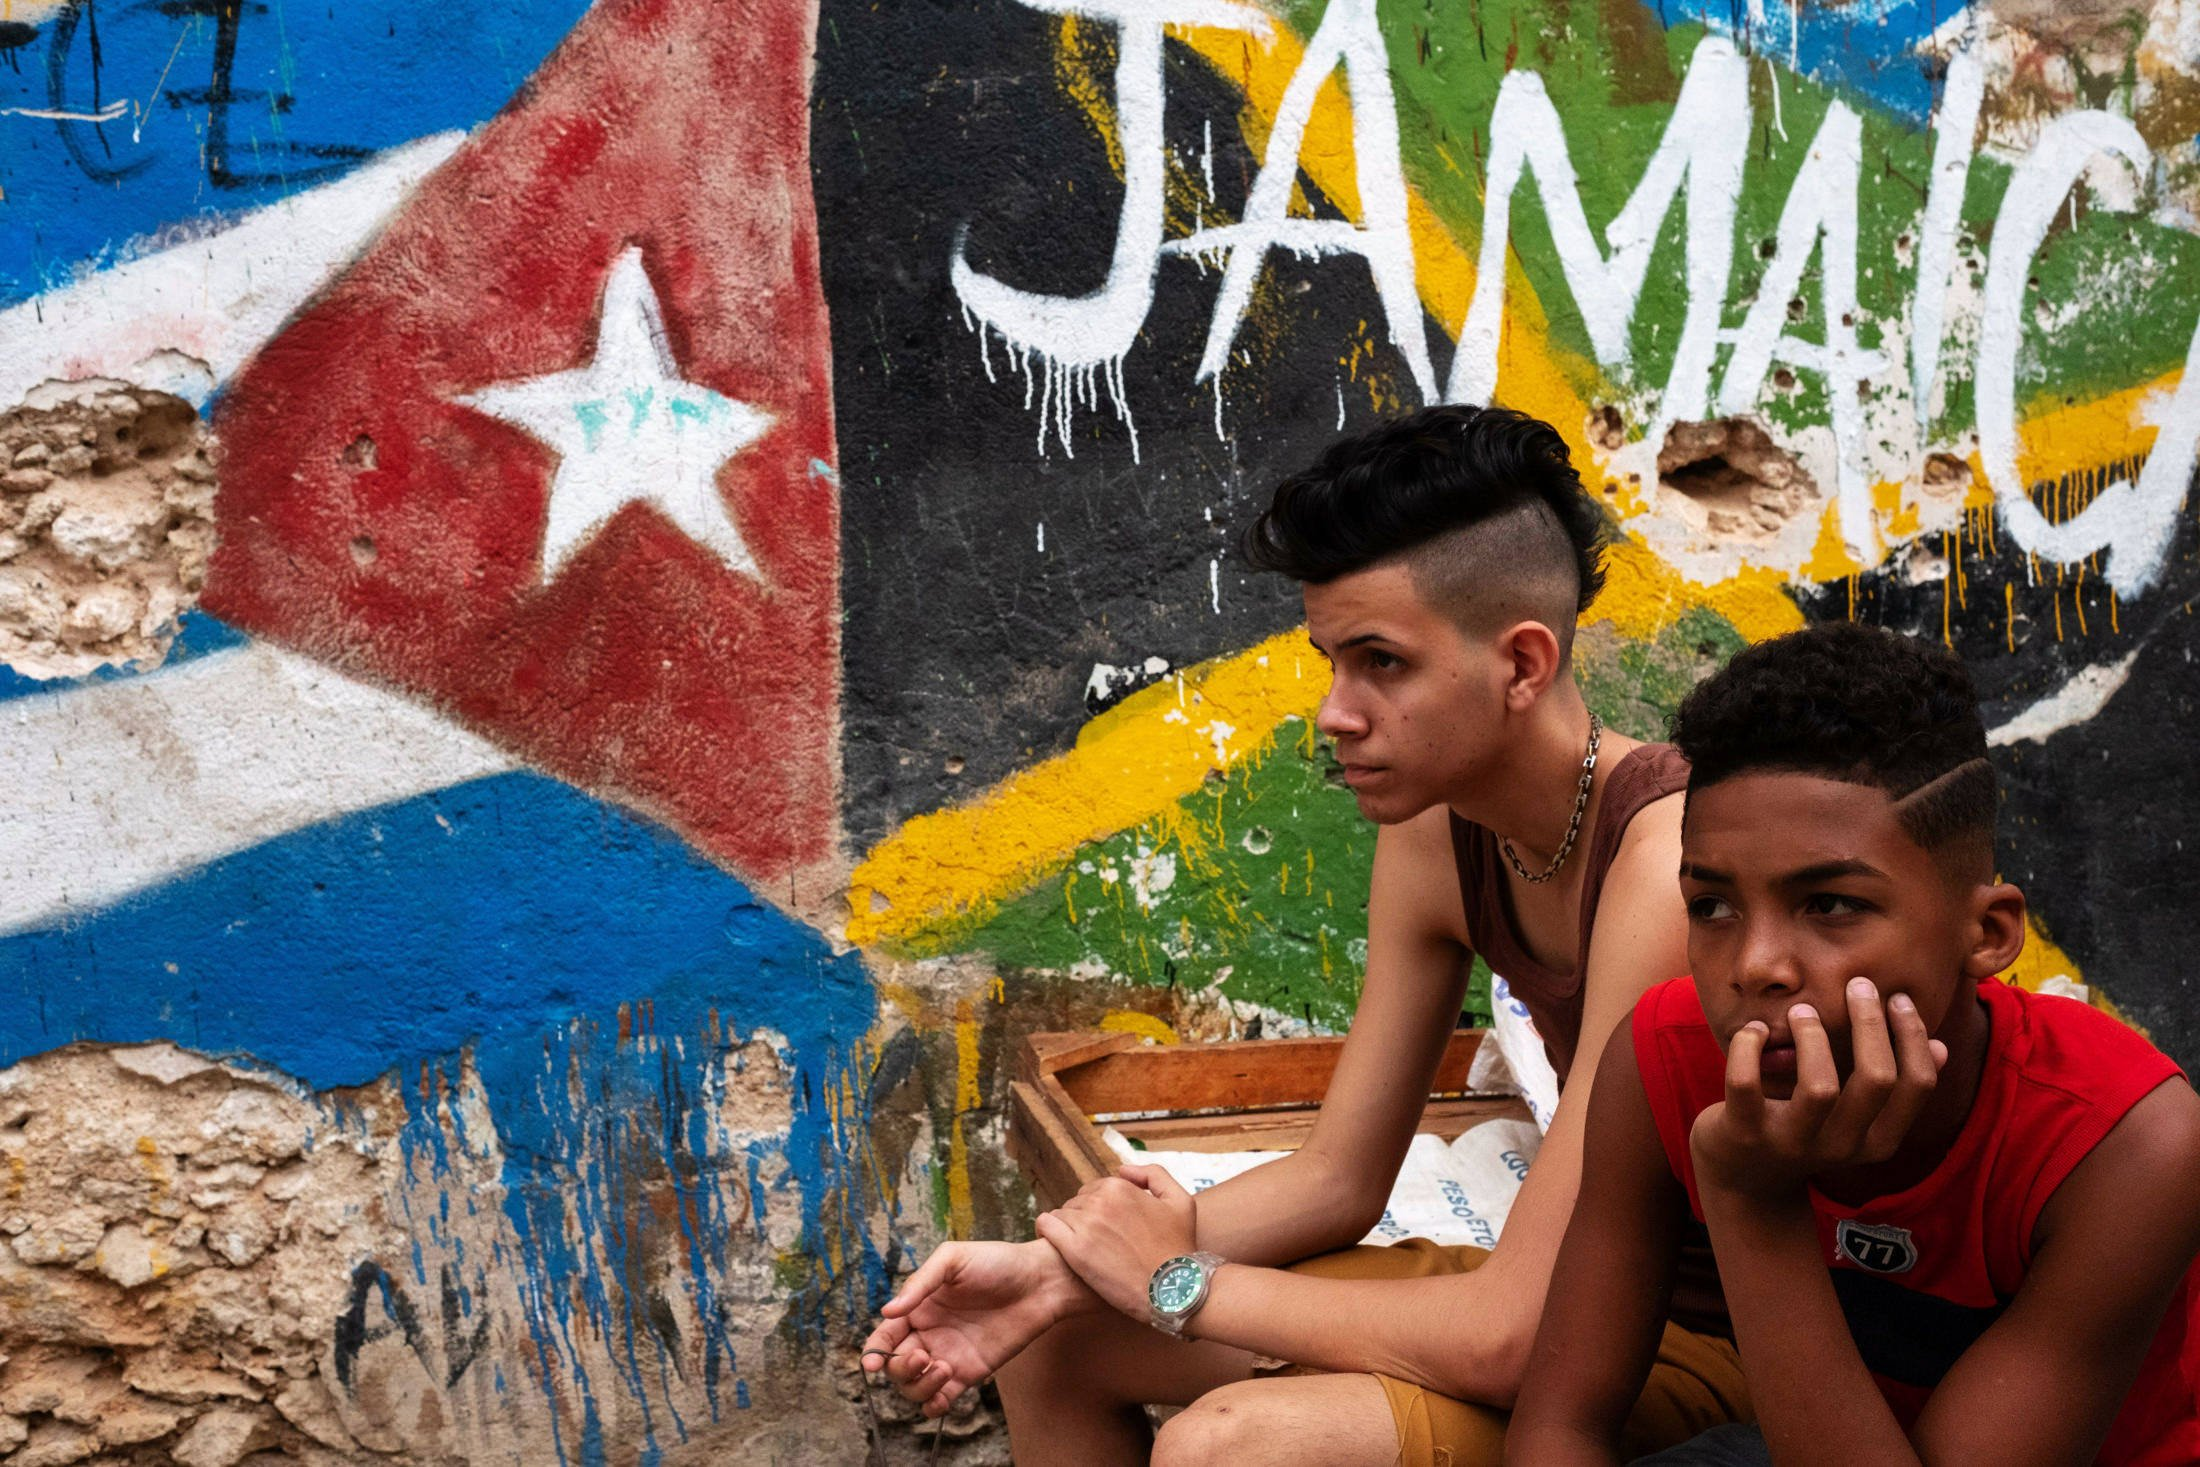 two boys sitting next to a painting with a Jamaican flag